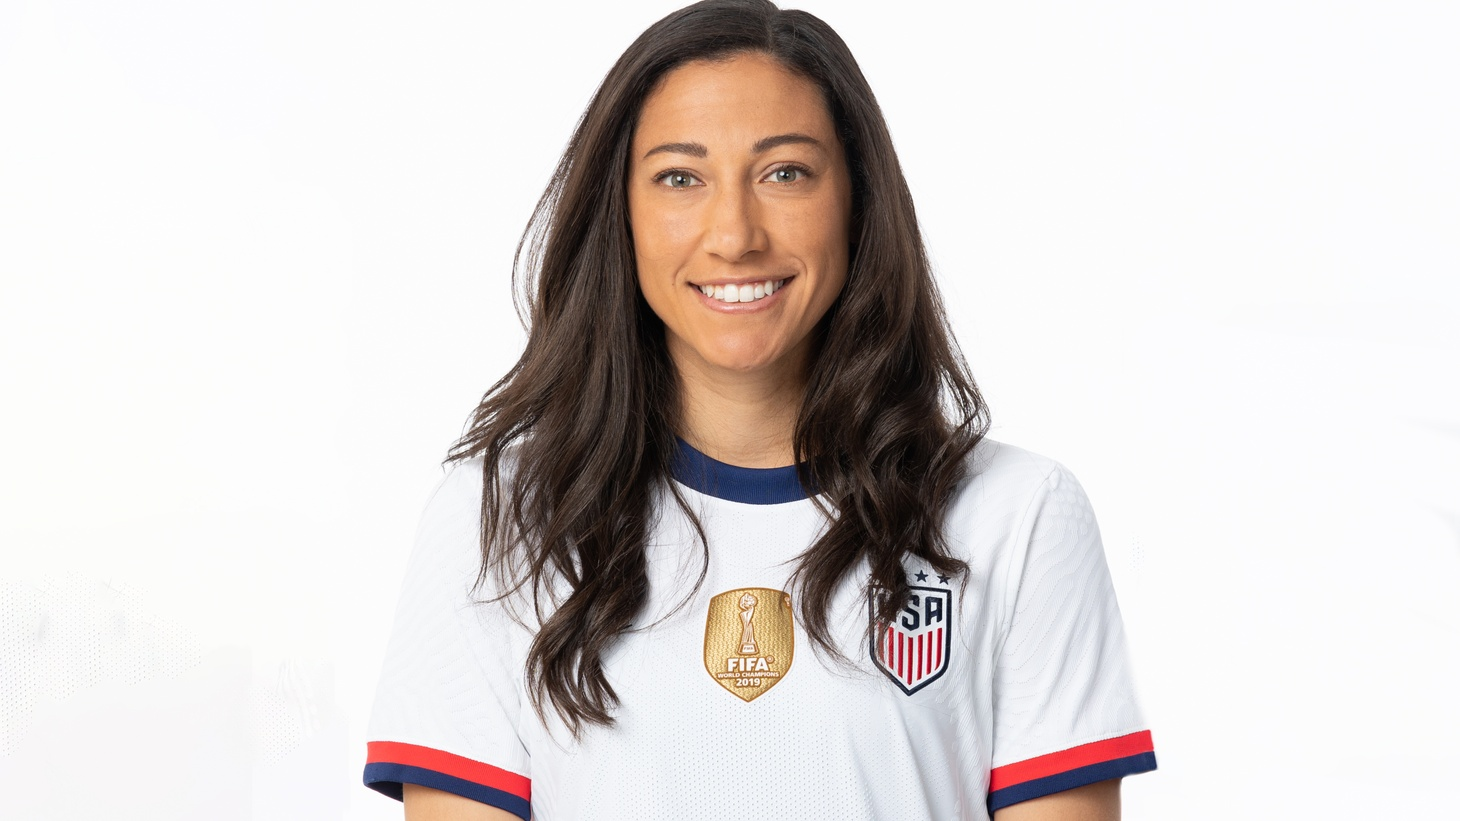 """Christen Press grew up in Palos Verdes Estates and says soccer was a family affair. She played with both her sisters, and her mom and dad coached her youth teams """"up until they realized I was actually pretty good."""""""